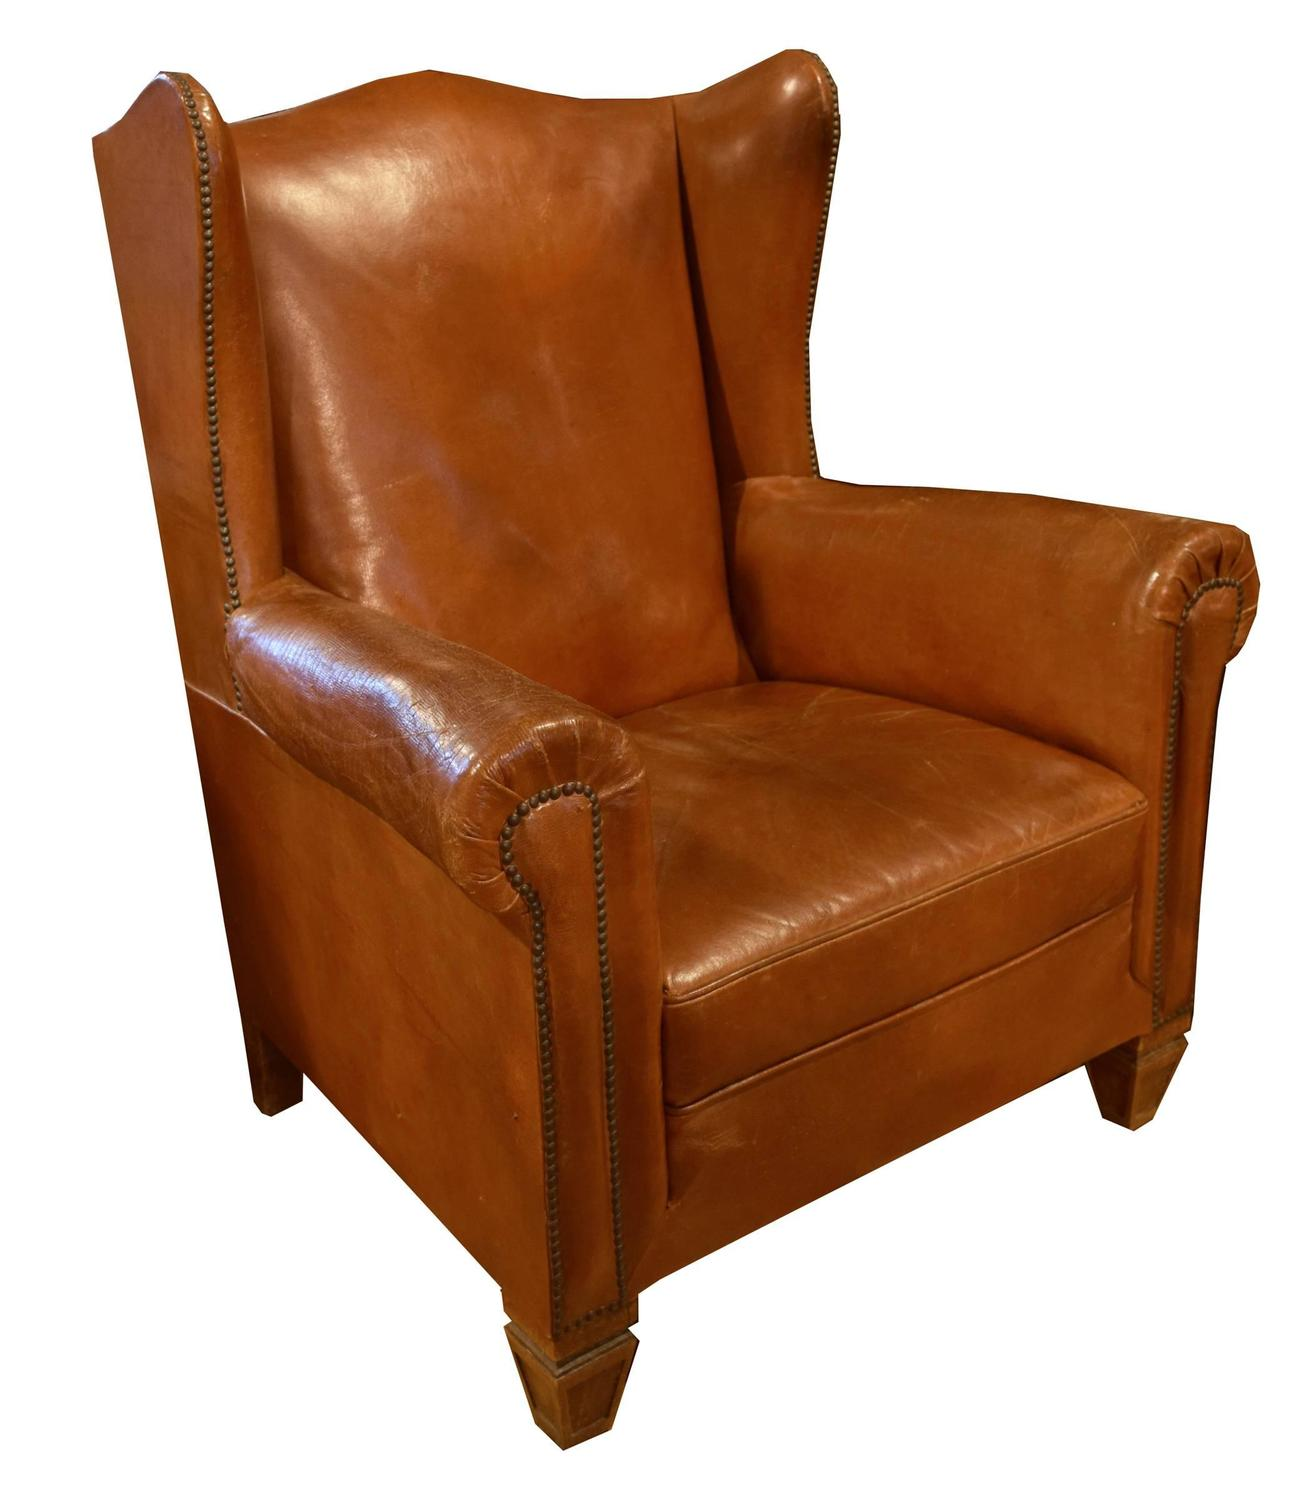 Italian leather wingback chair for sale at 1stdibs for Leather wingback recliner sale